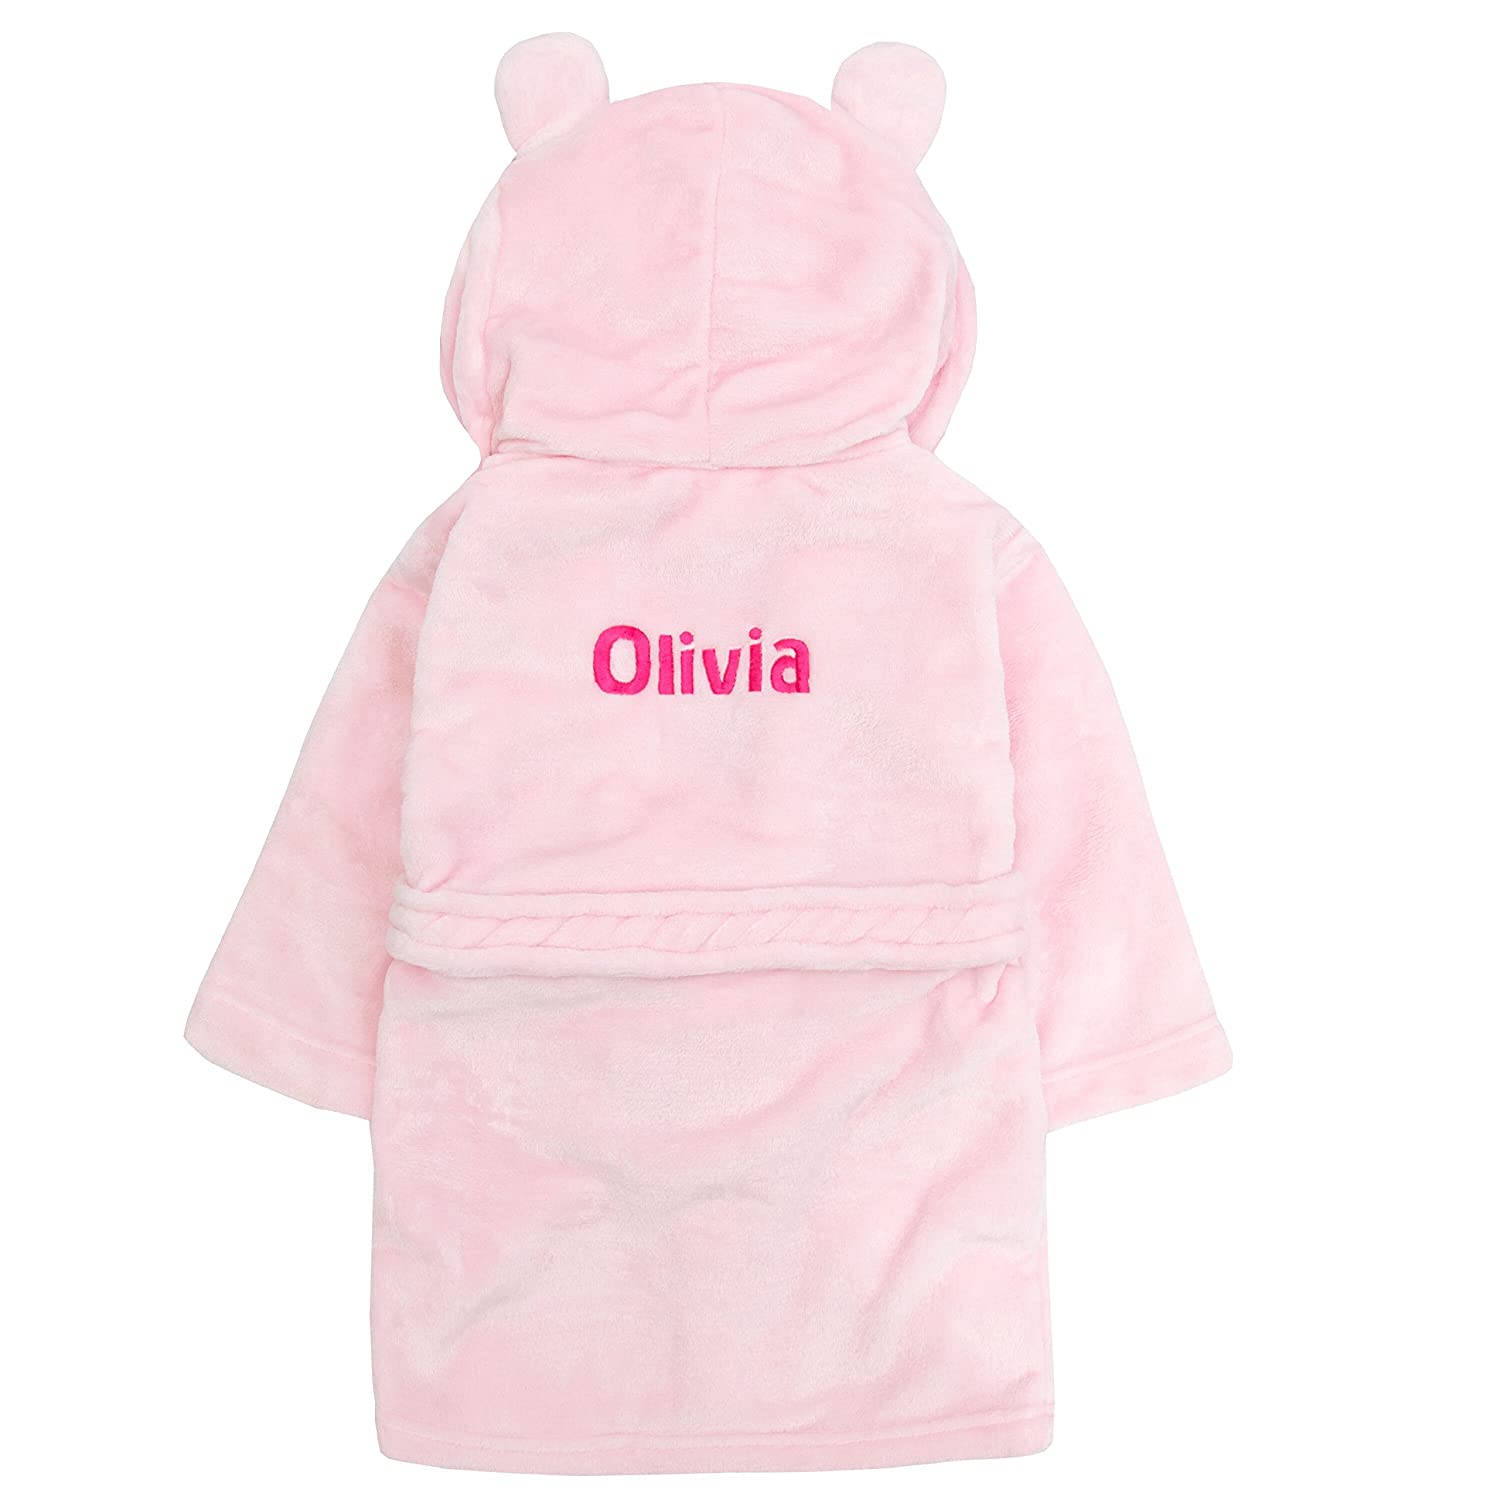 Embroidered Personalised Soft Baby Pink Dressing Gown Bath Robe with Teddy EARS 6 Months-5 Years